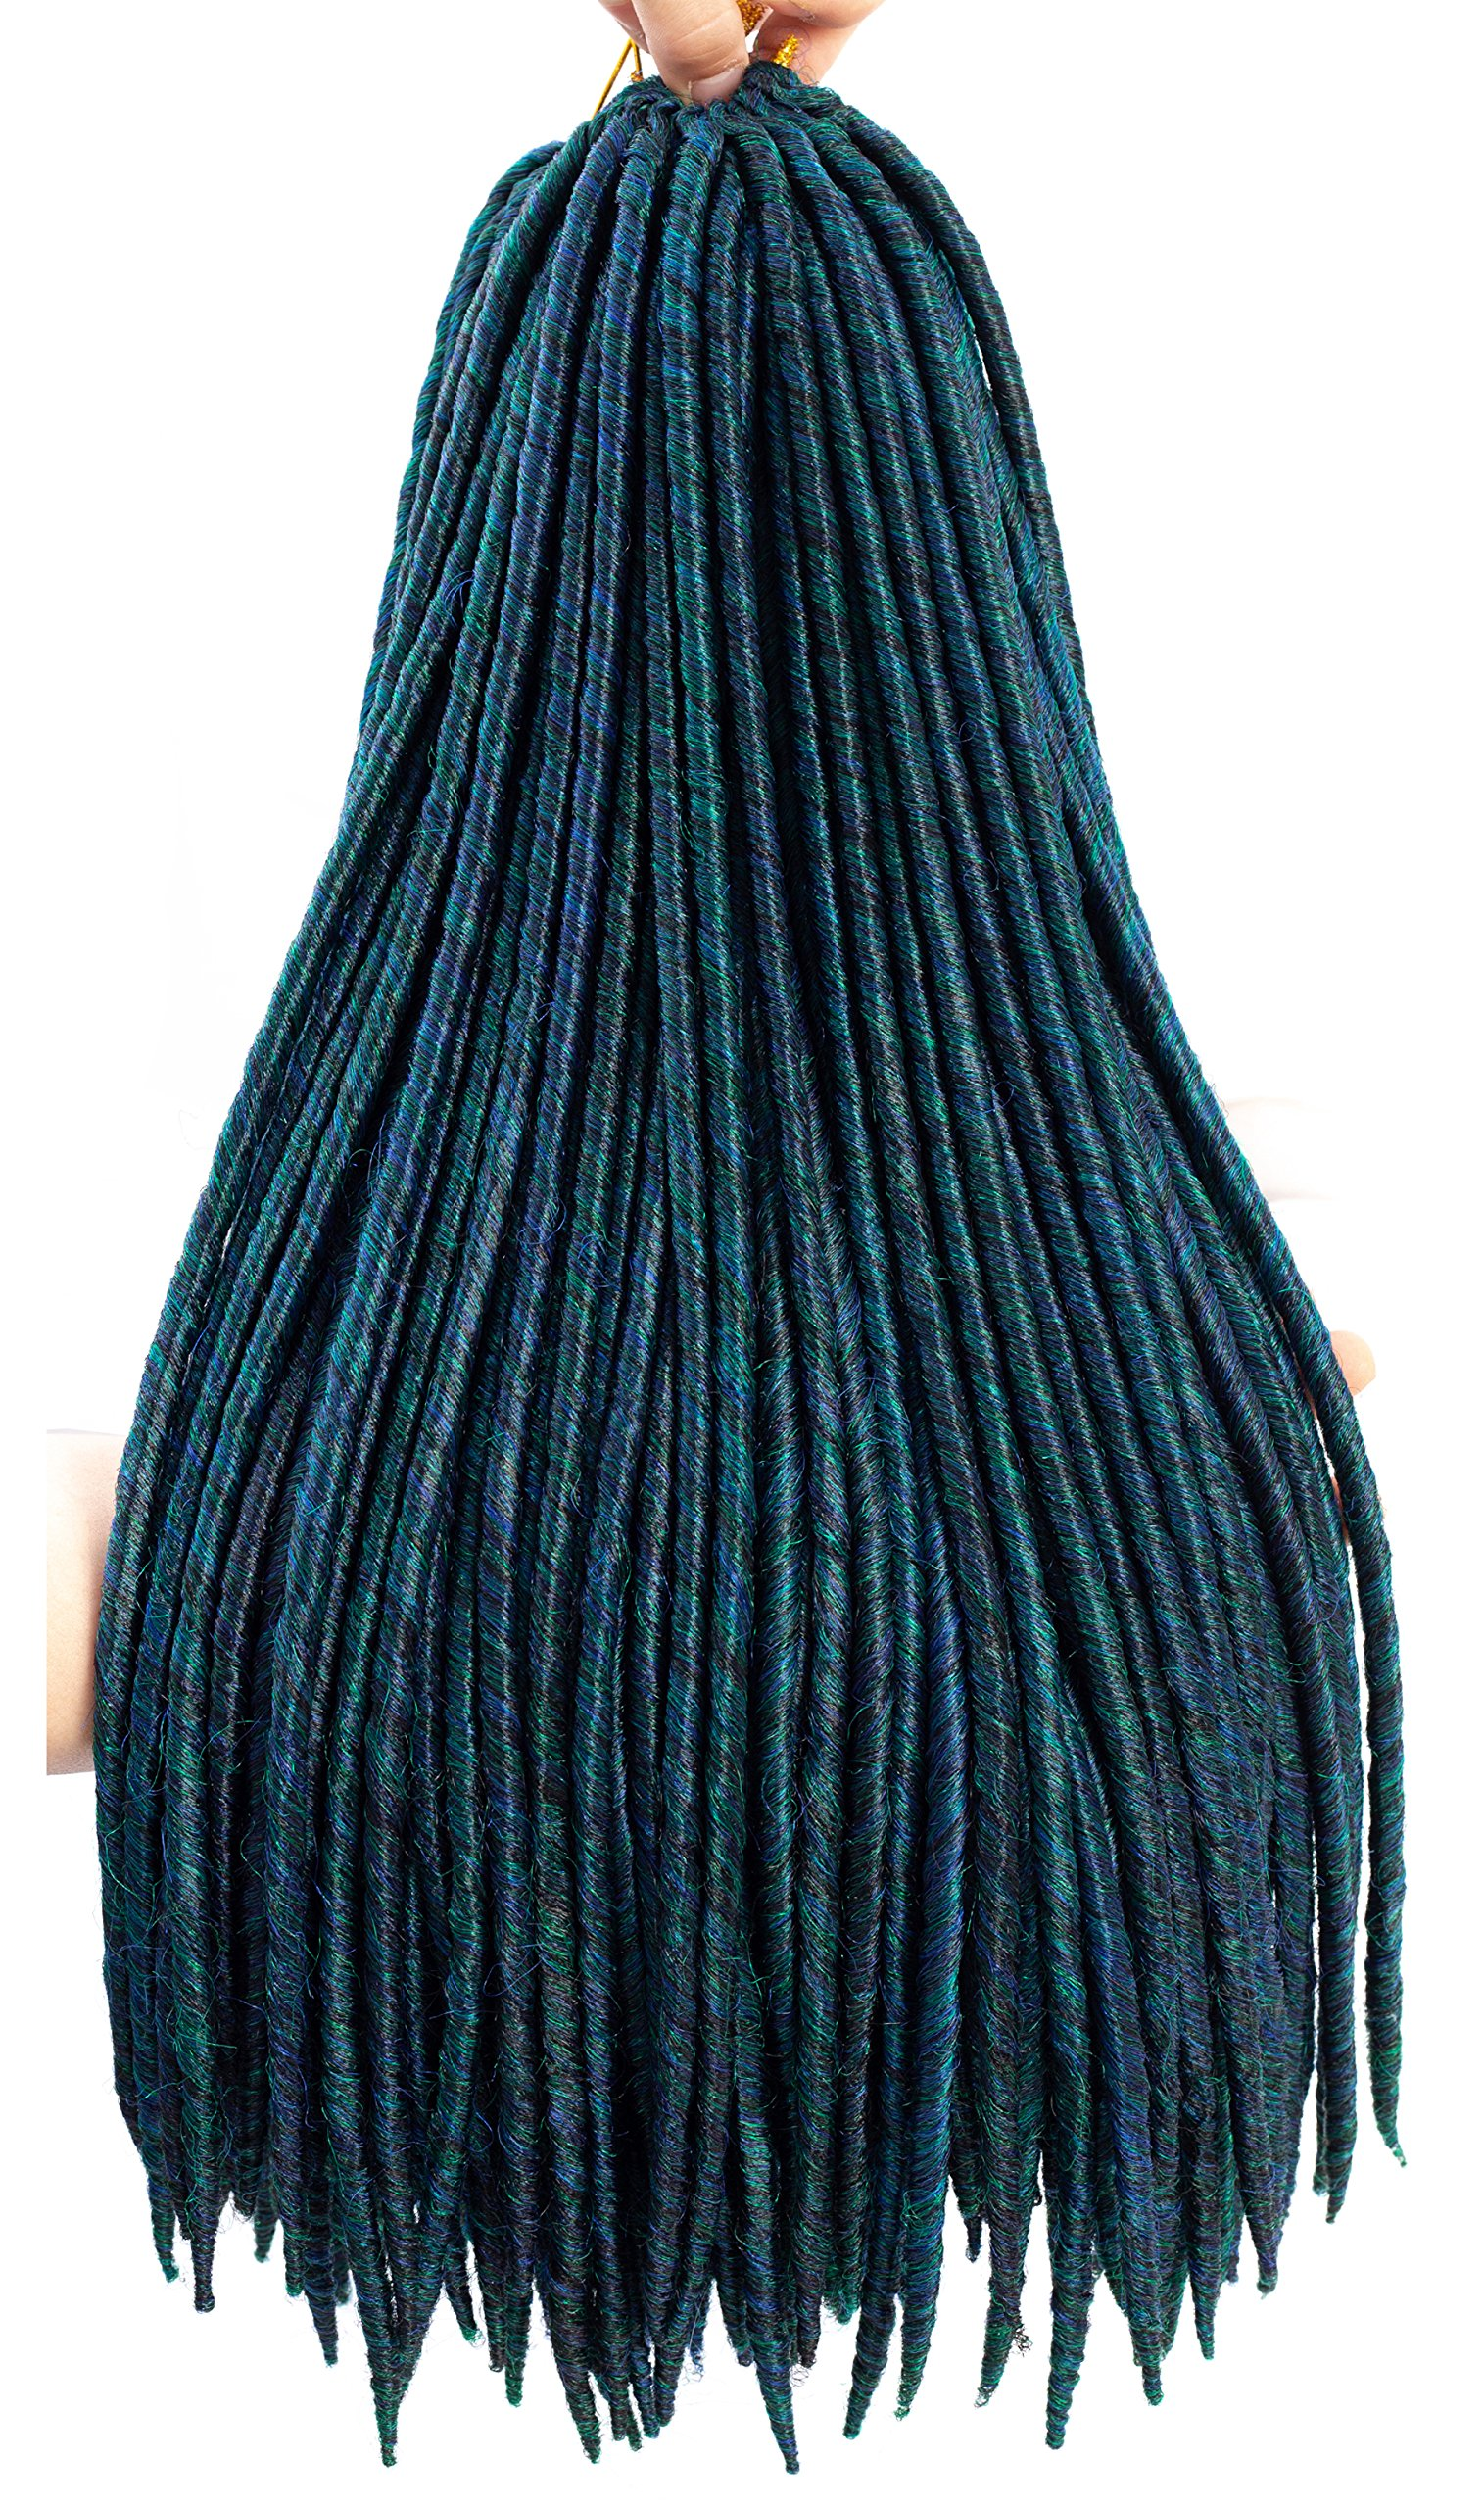 7 Packs Goddess Faux Locs Crochet Hair Extensions Syntheic Crochet Braids Hair Dreadlocks Ombre Braiding Hair 16Strands 85g/Pack(18''1B/BLUE/GEREEN) by Firstcyh Hair